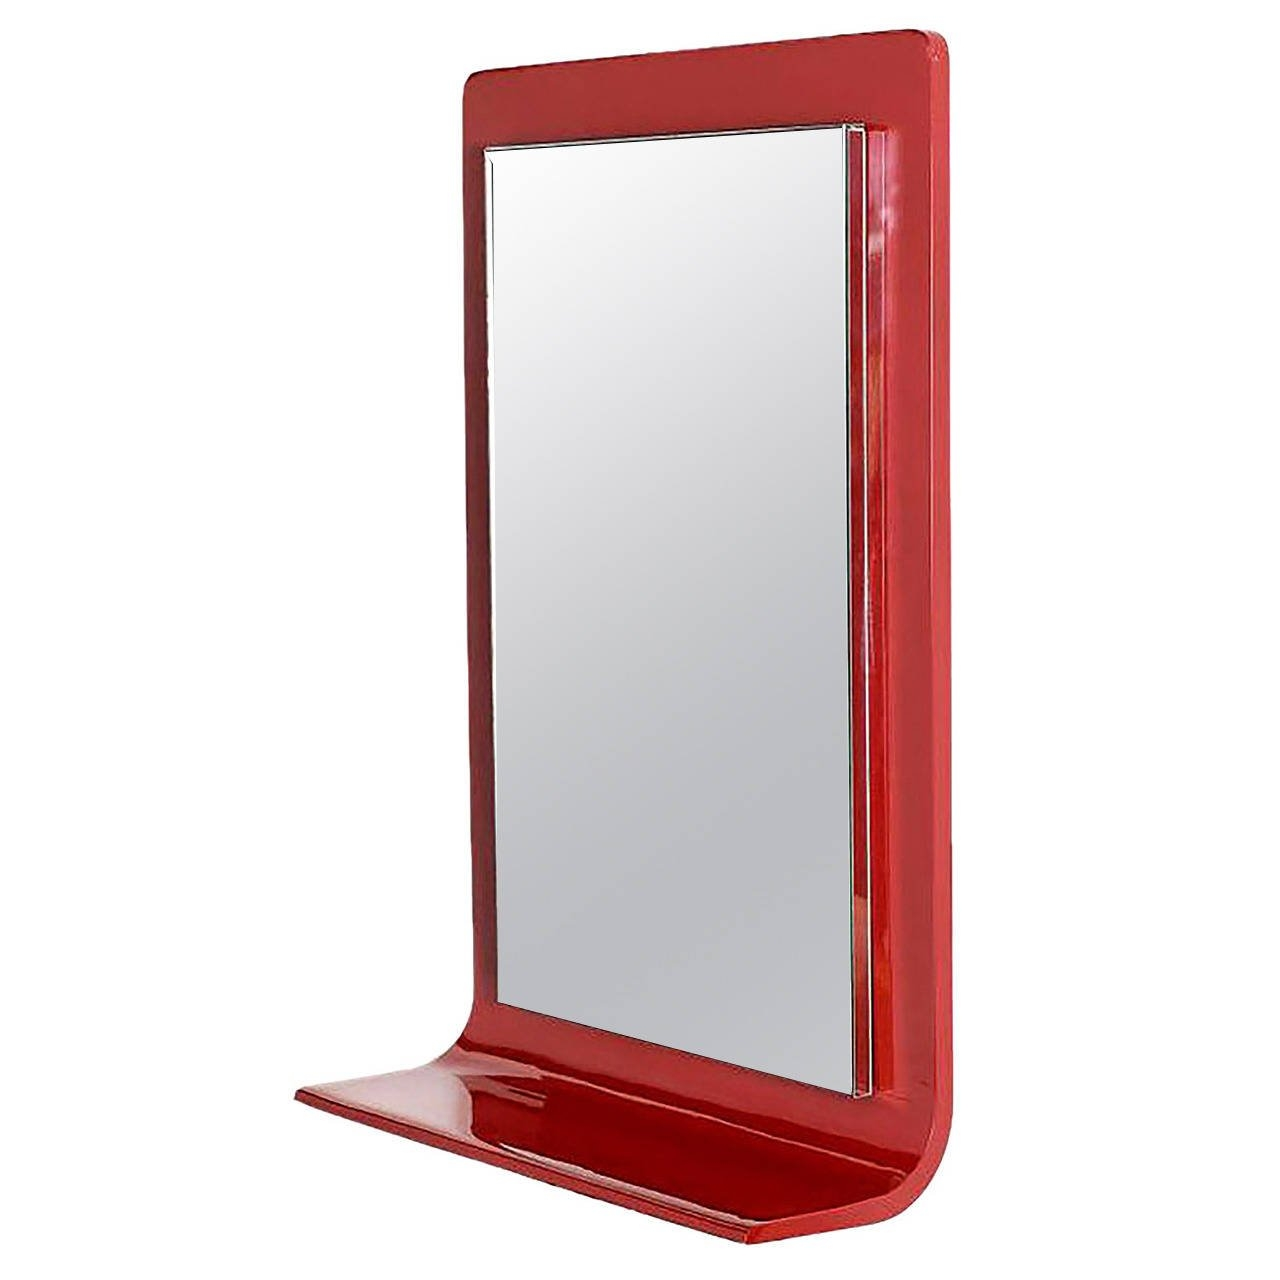 Gampel Stoll Red Lacquered Wall Mirror With Integral Console For Throughout Red Wall Mirrors (Image 6 of 15)